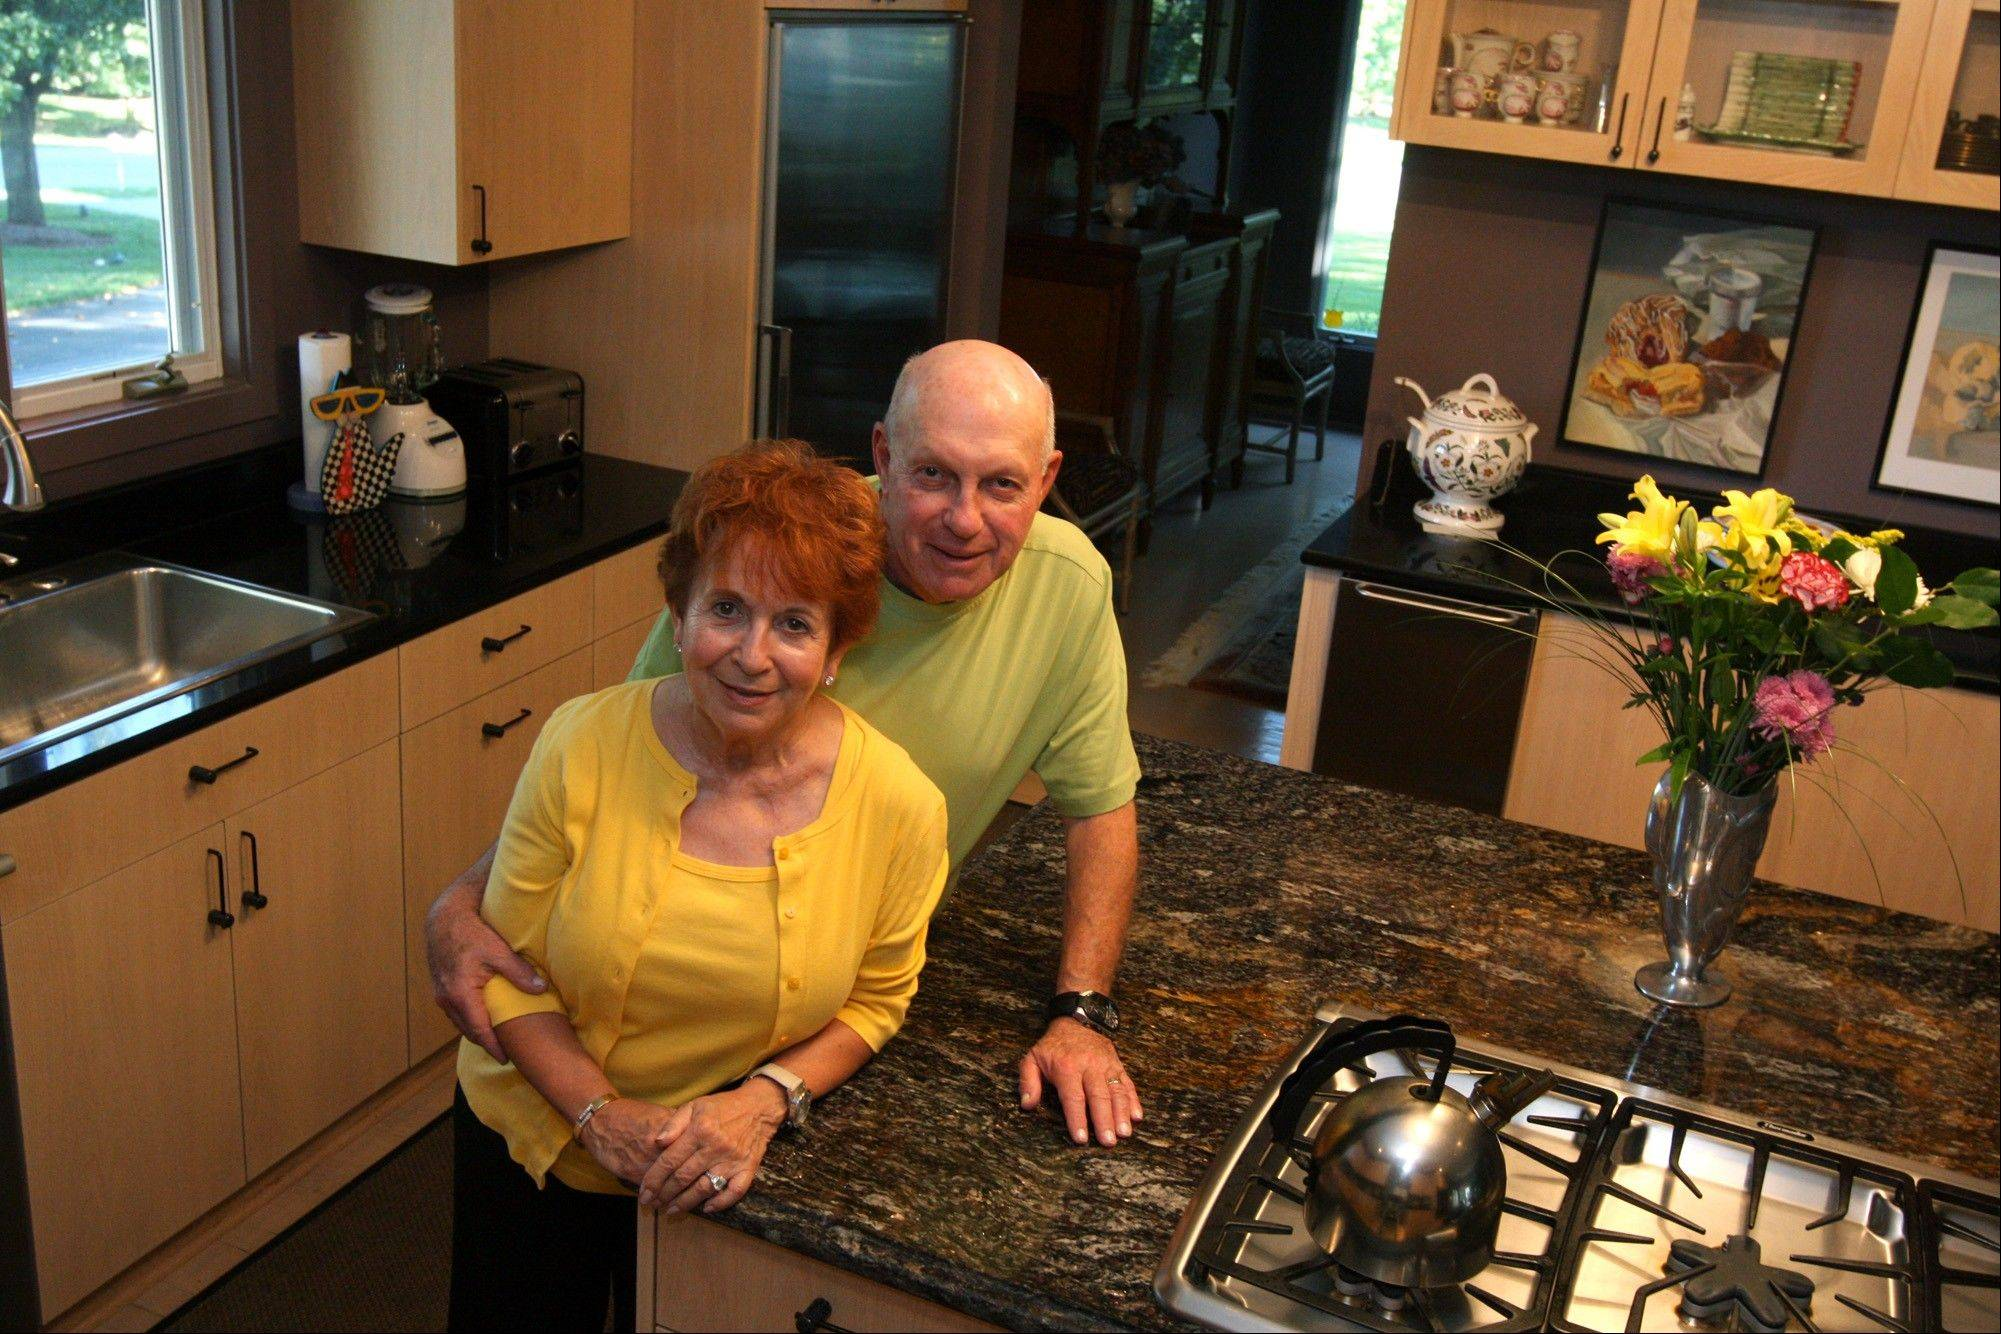 To reduce costs, Sherry and Joe Warsaw hired a carpenter to replace the doors of their kitchen cabinets; they spent about $11,000 for the woodworking.